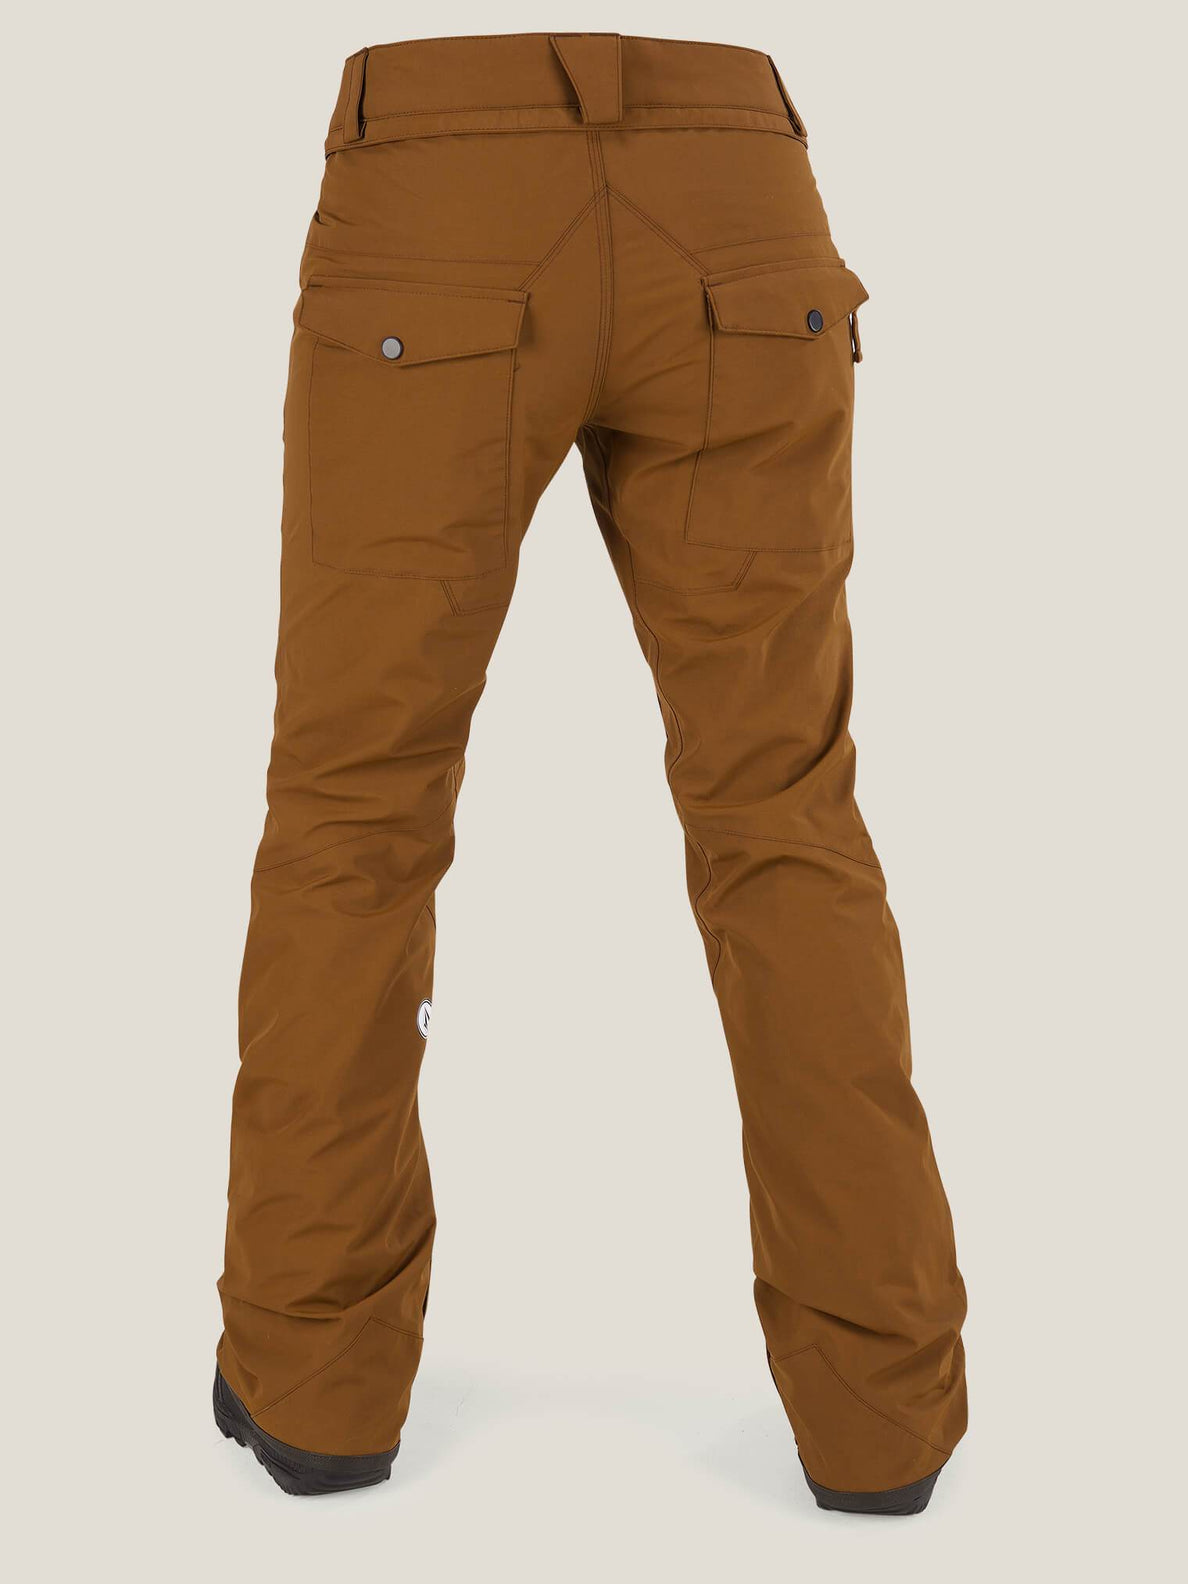 Knox Gore-tex® Pant In Copper, Back View